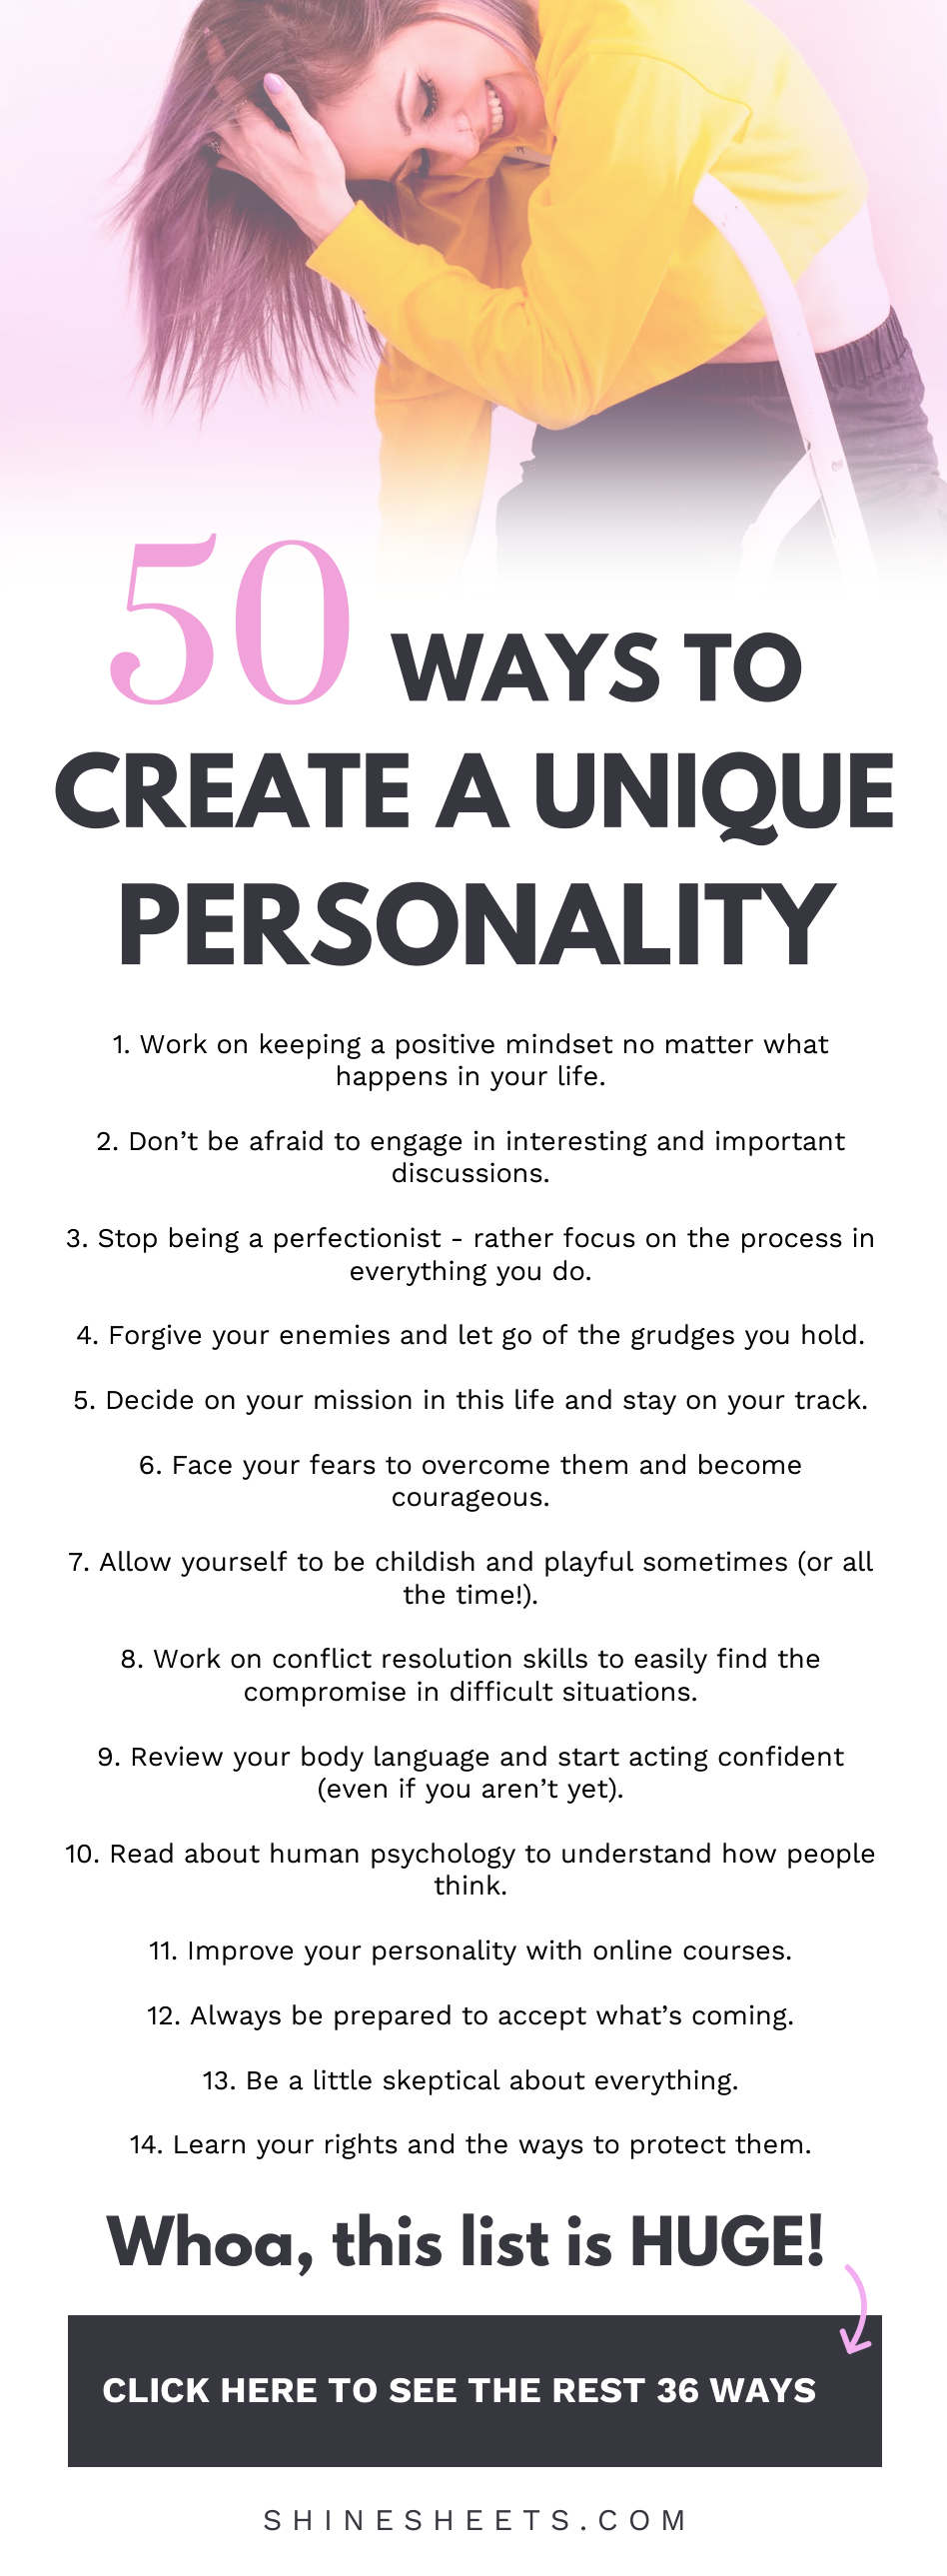 50 Ways To Create a Unique Personality